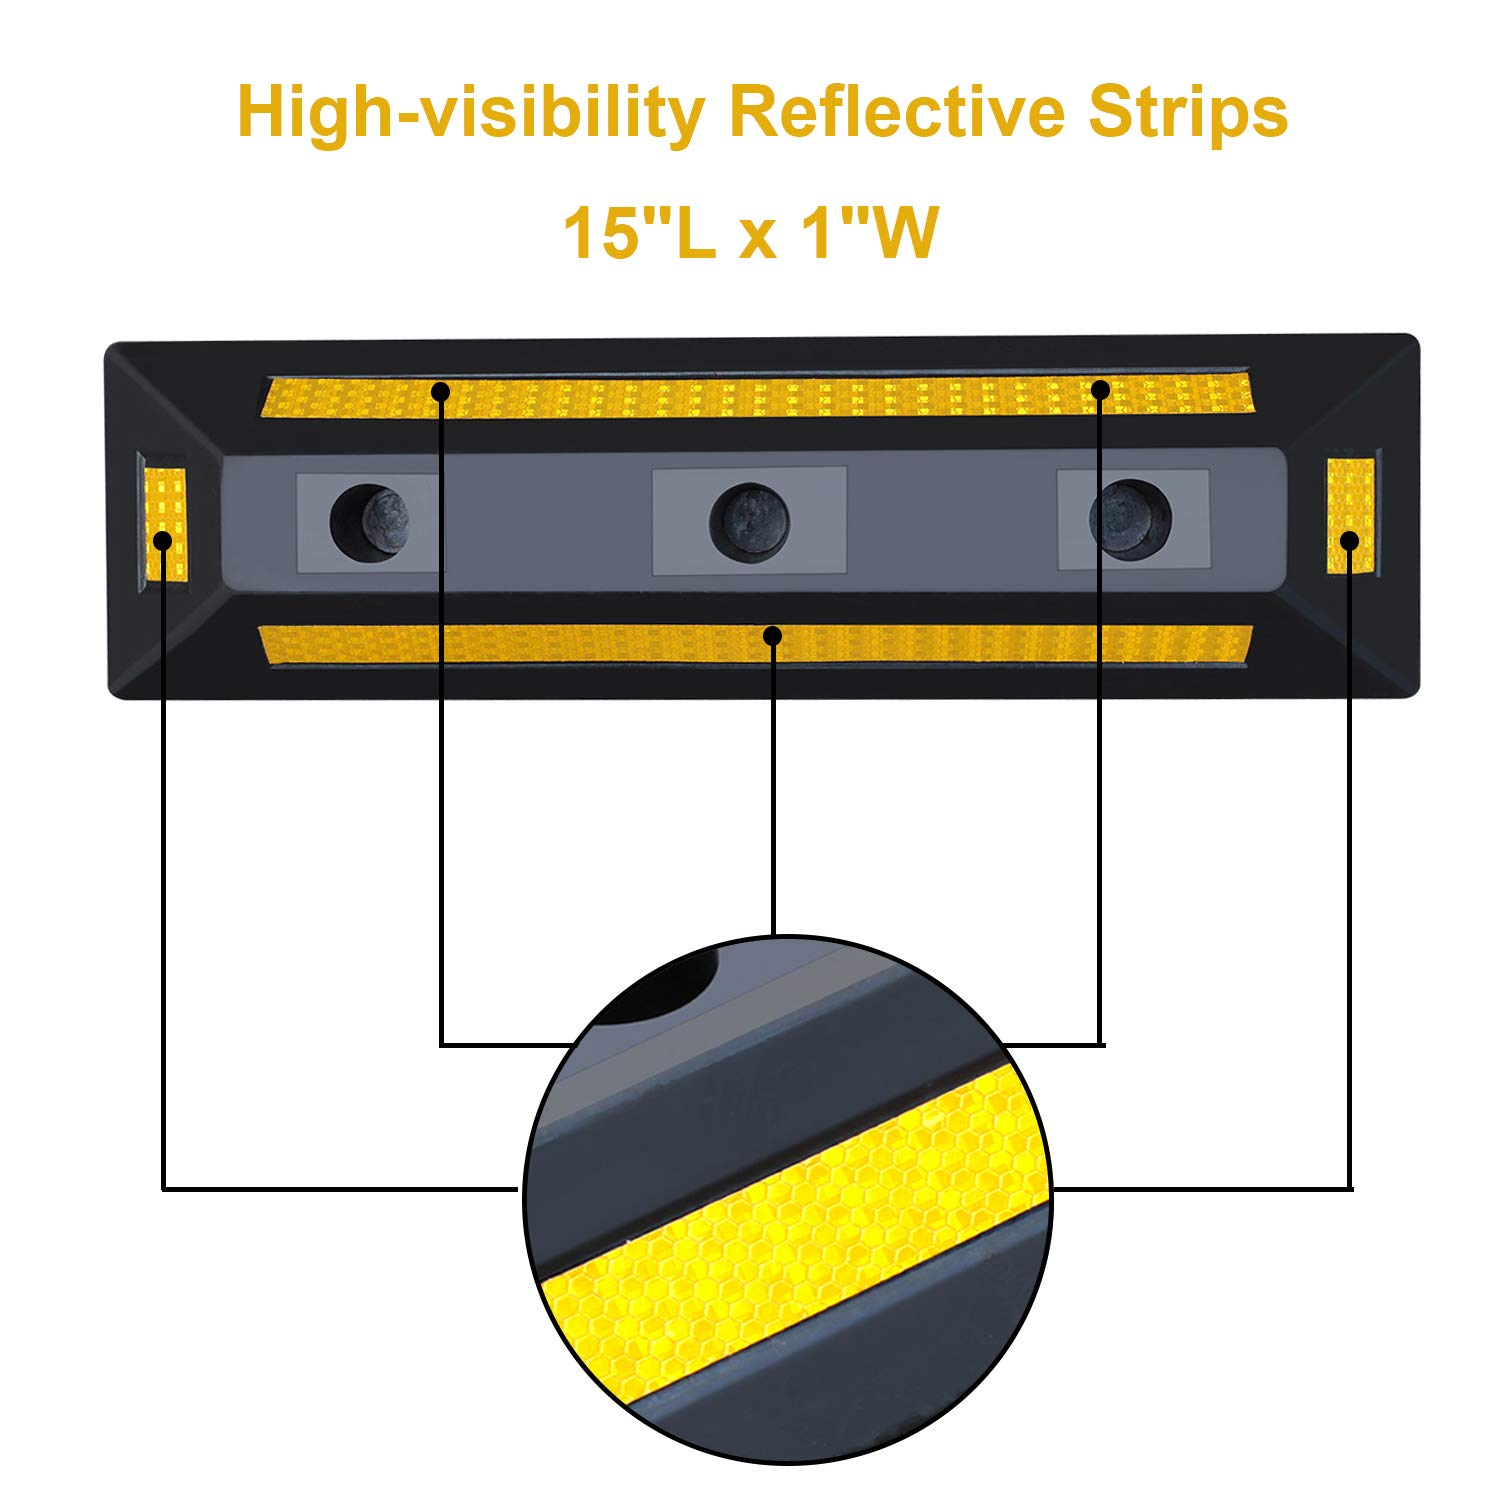 2 Pack Heavy Duty Rubber Parking Blocks Wheel Stop for Car Garage Parks Wheel Stop Stoppers Professional Grade Parking Rubber Block Curb w/Yellow Refective Stripes for Truck RV, Trailer 21.25''(L) by Reliancer (Image #4)